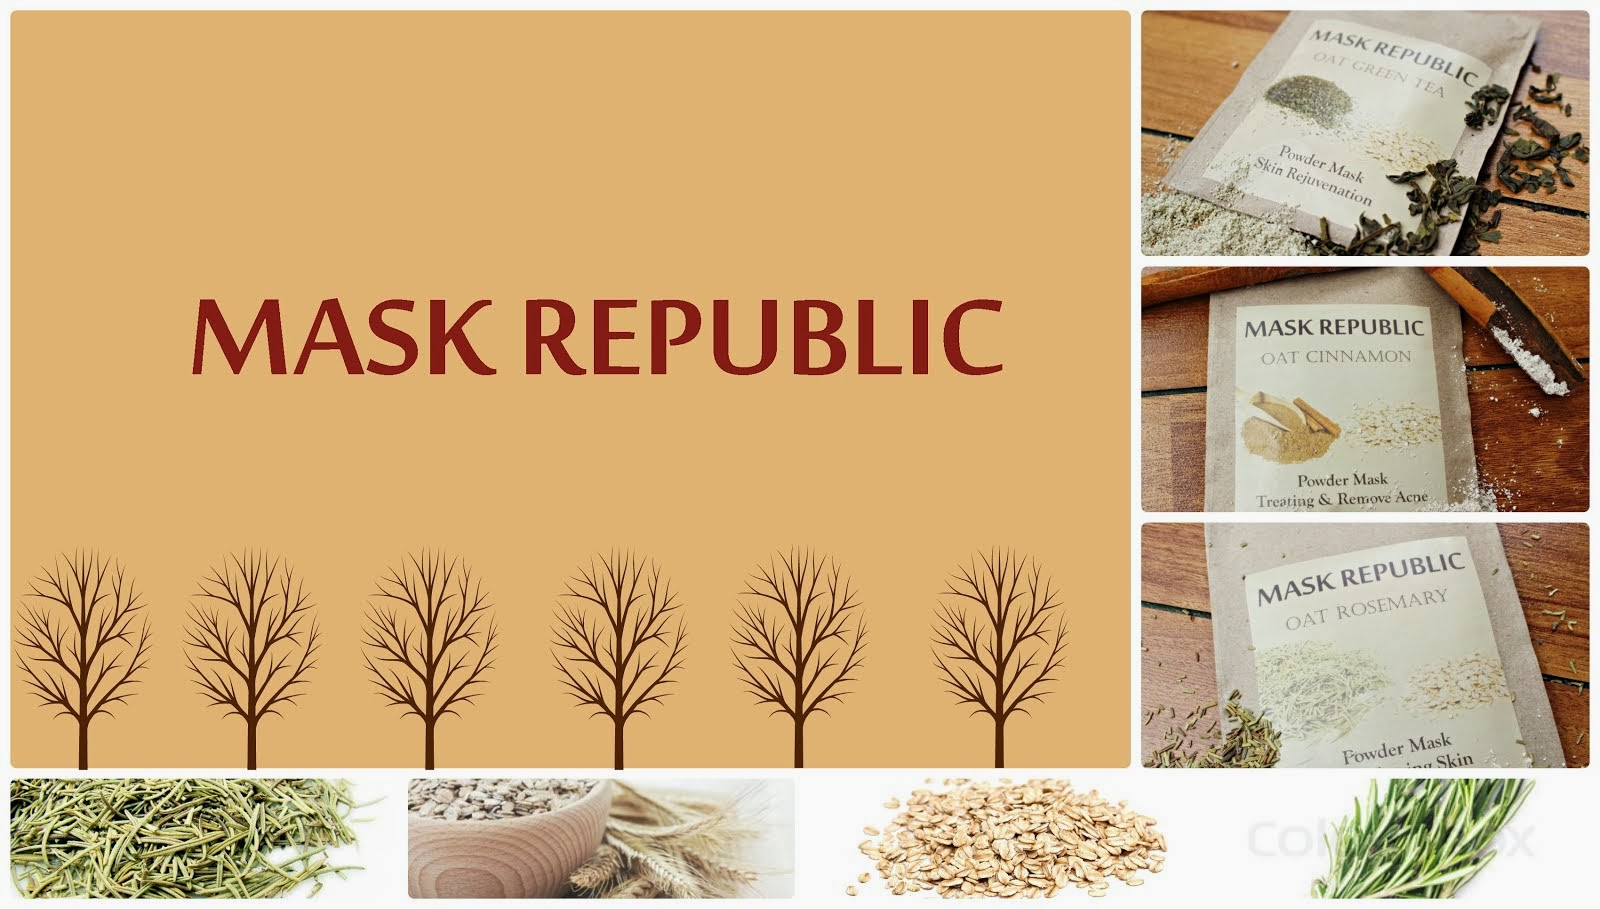 Mask Republic